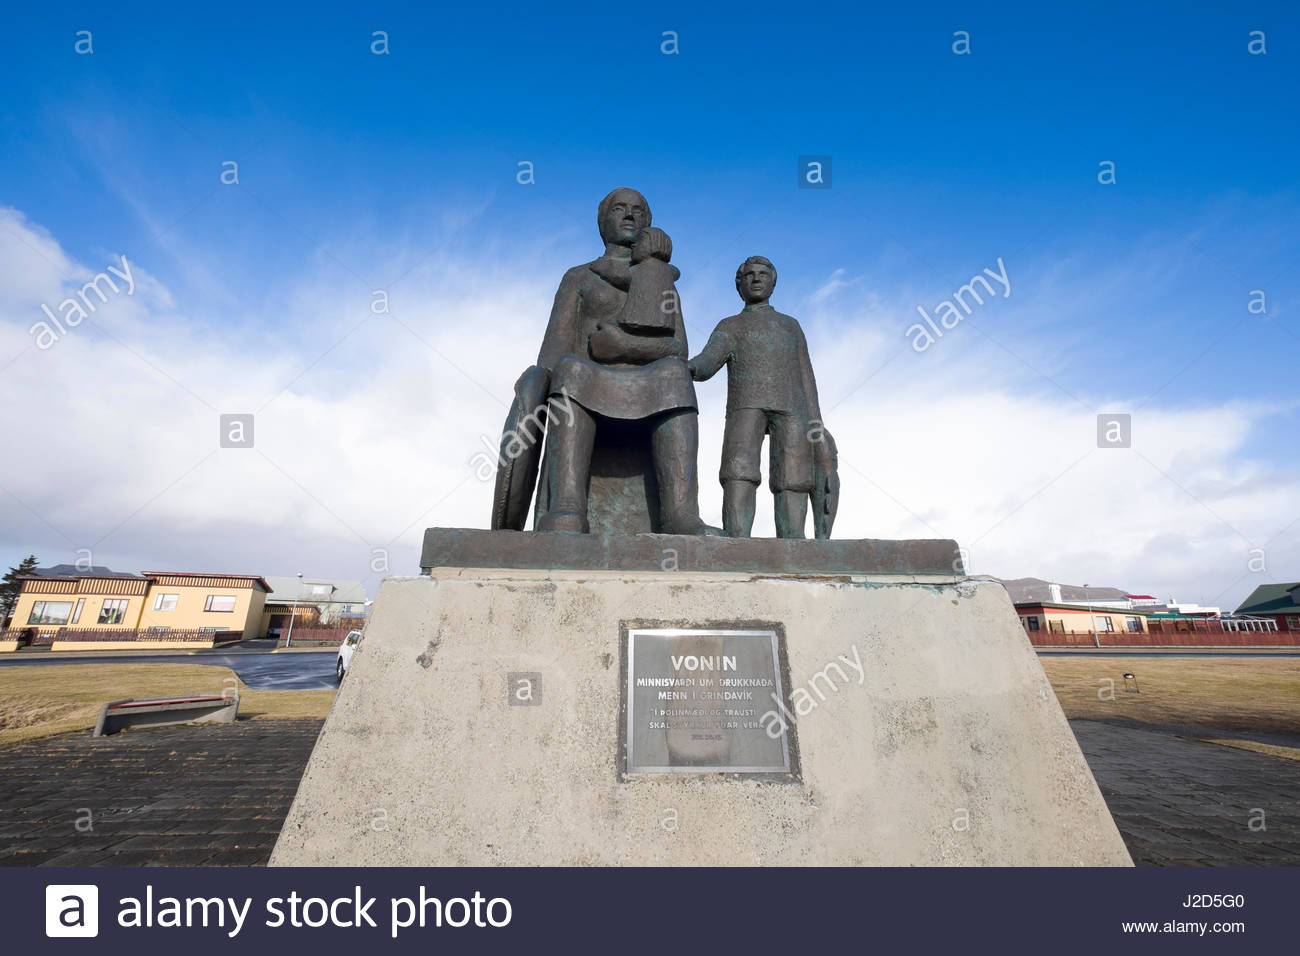 Statue of the bereaved dedicated to the families of local fishermen lost at sea, Grindavík, Southern Peninsula, - Stock Image